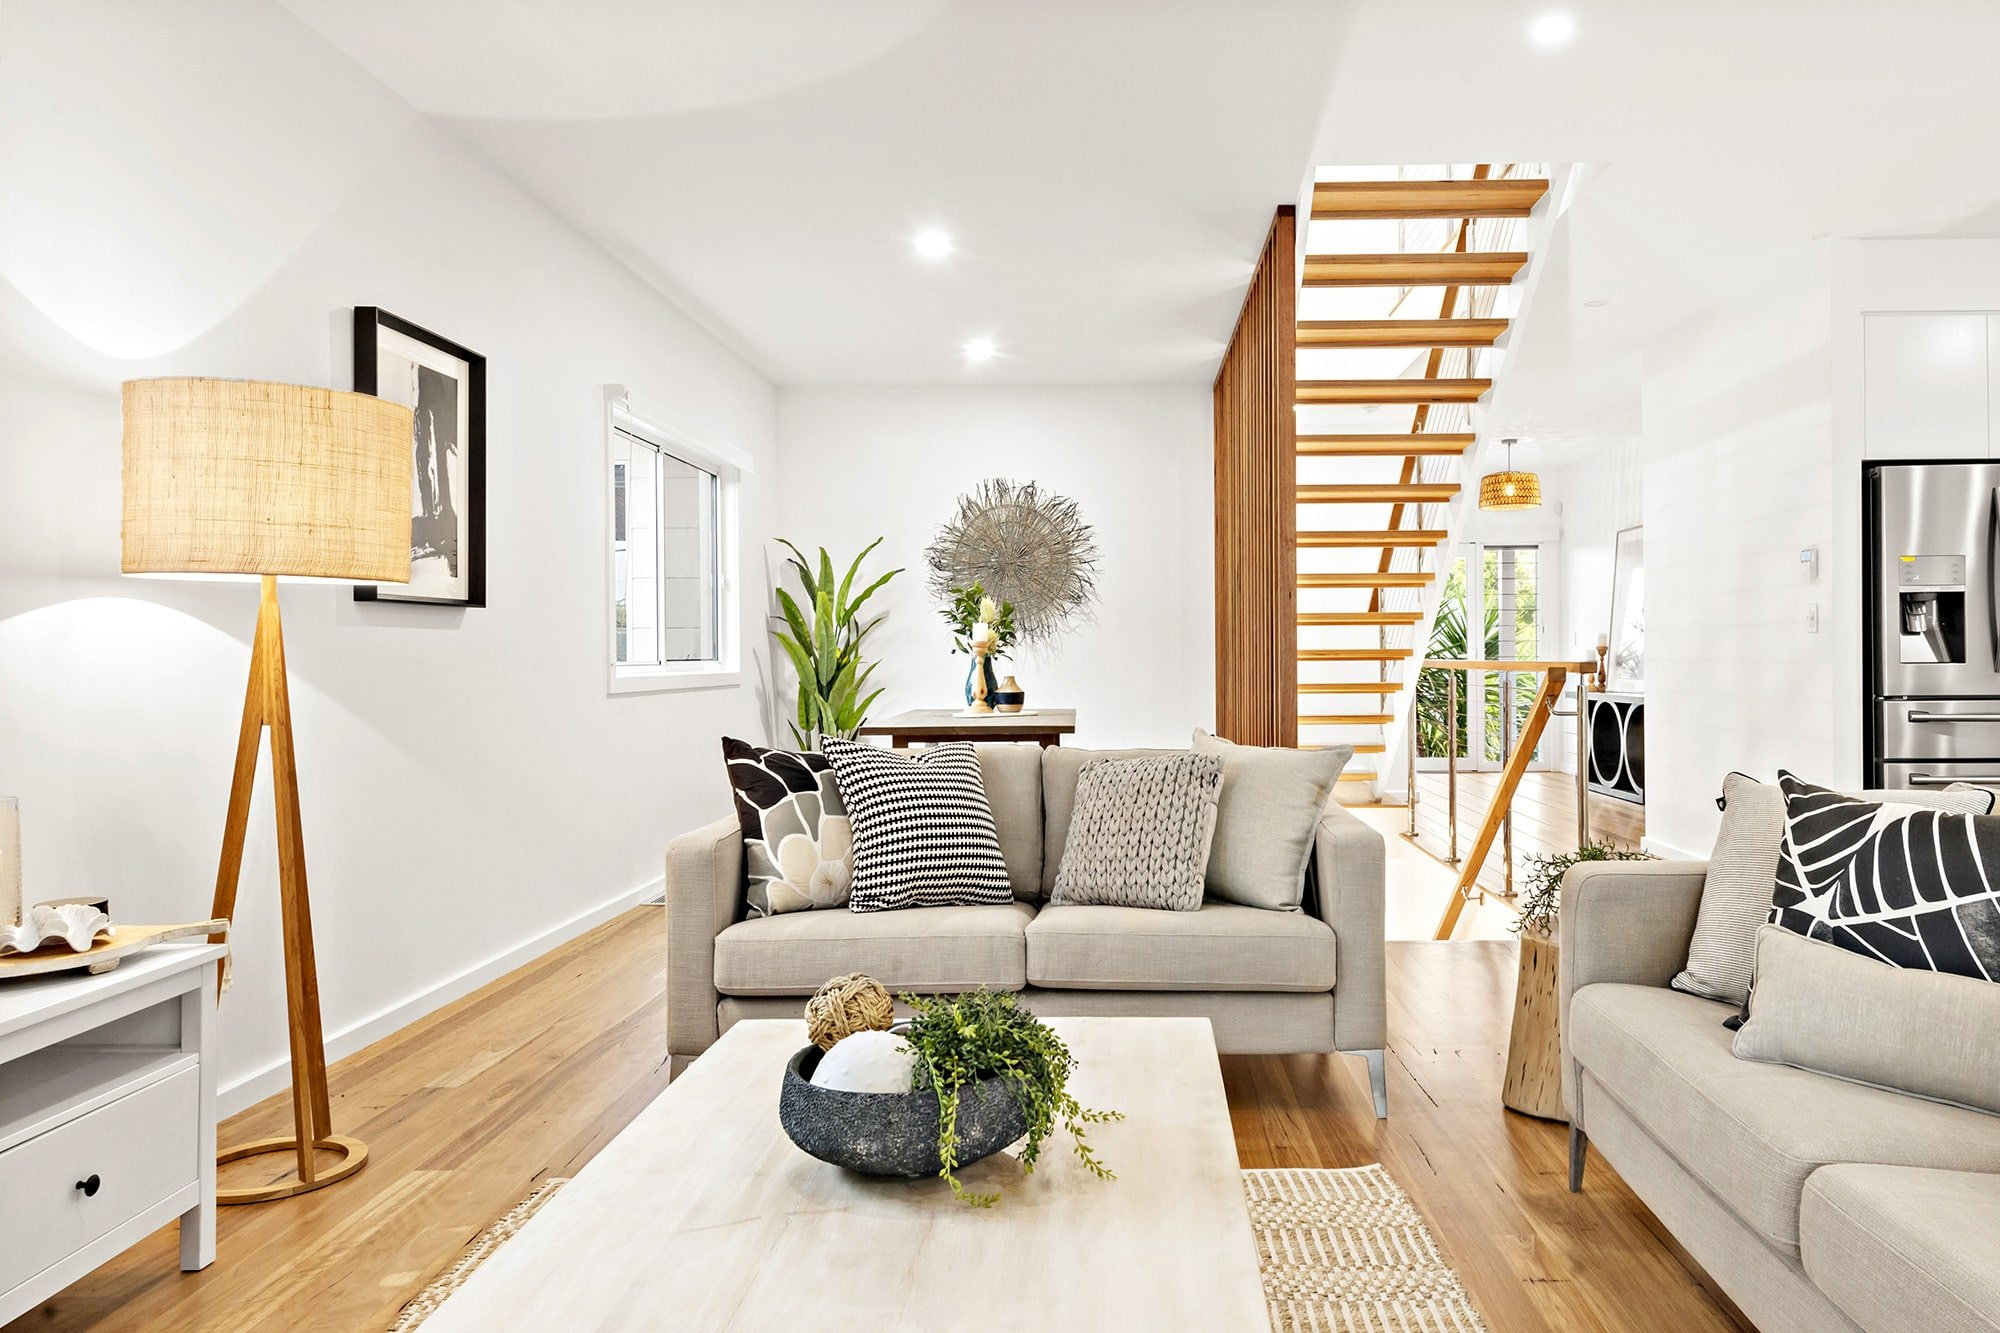 Bligh Street | Caves Beach - https://www.peonyandsilk.com.au/wp-content/uploads/2019/03/4-Living-Room.jpg